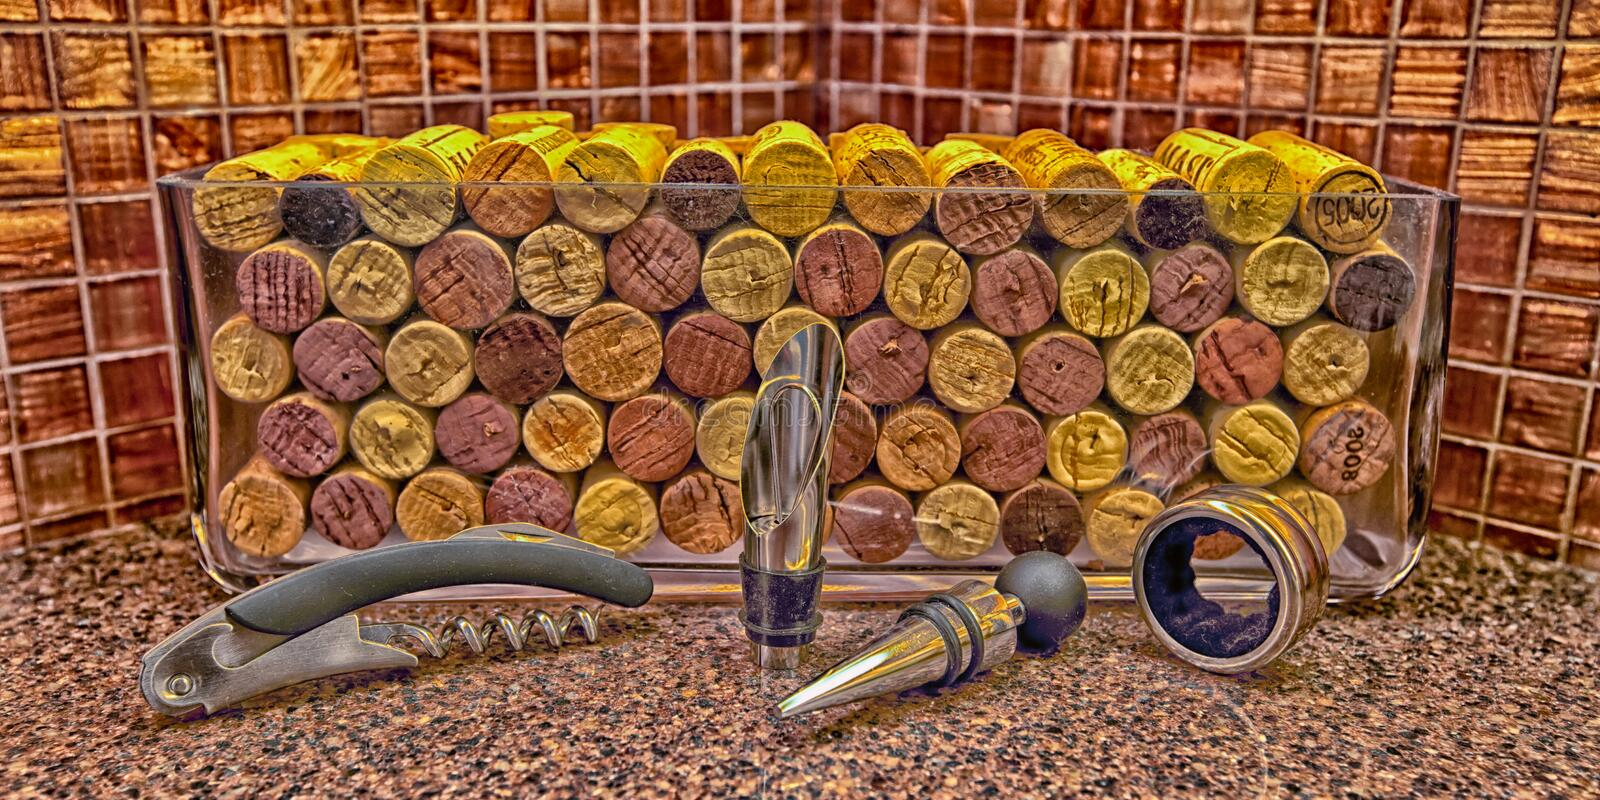 Download Wine Corks & Accessories editorial image. Image of corks - 28660010